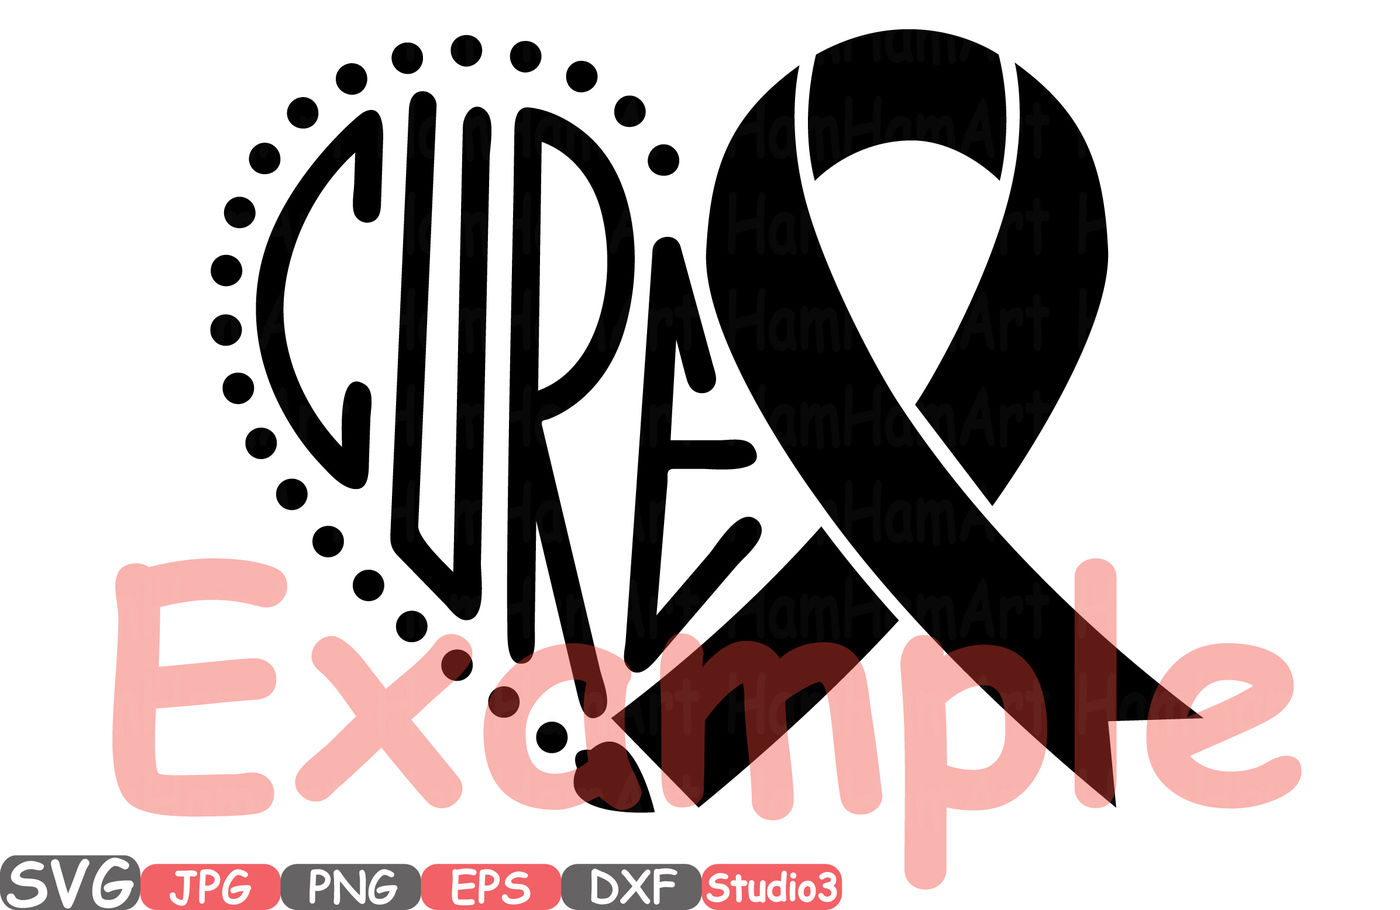 Breast Cancer Ribbon Silhouette Svg Cutting Files Digital Clip Art